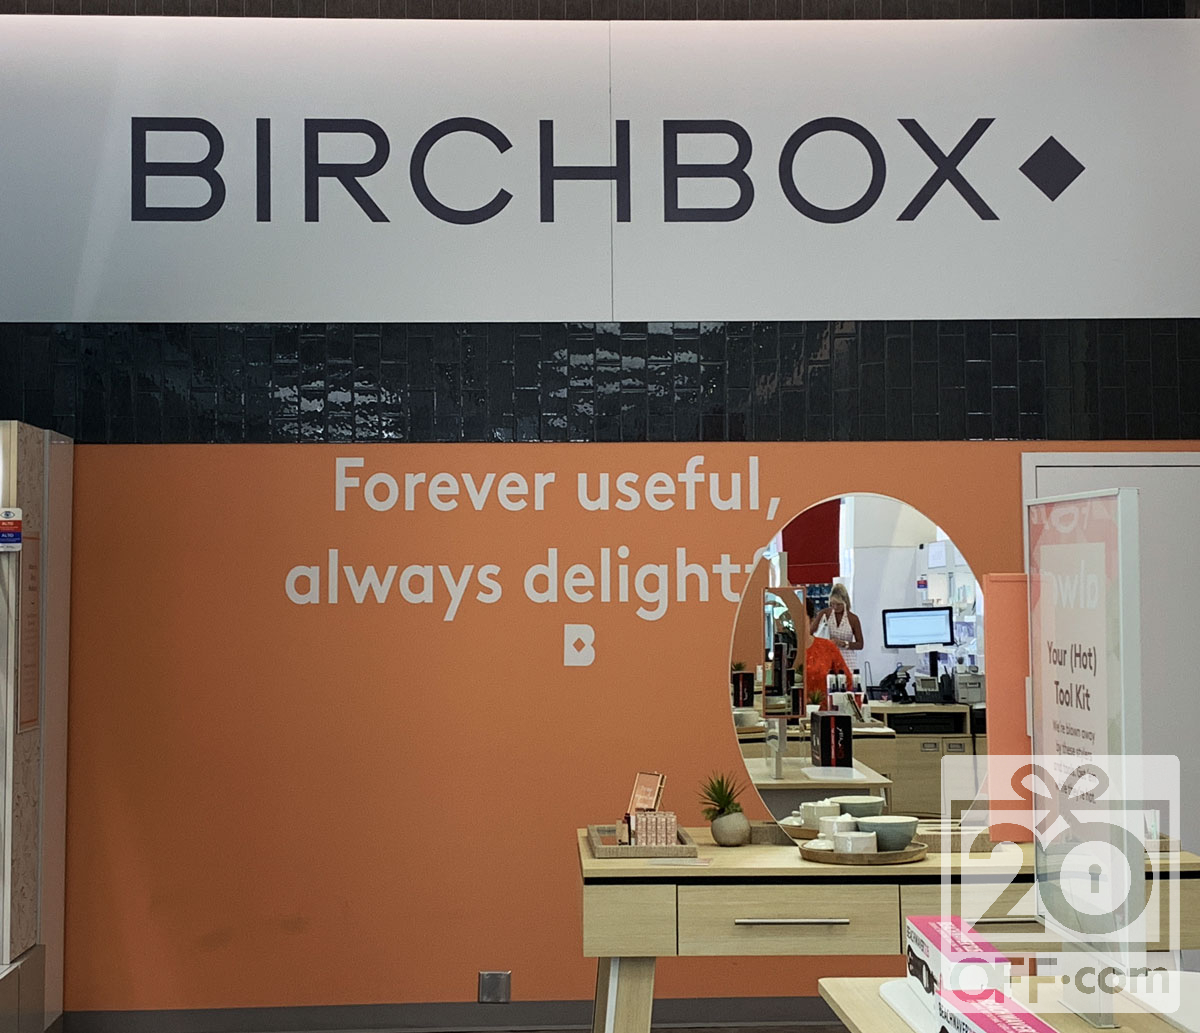 Birchbox at Walgreens